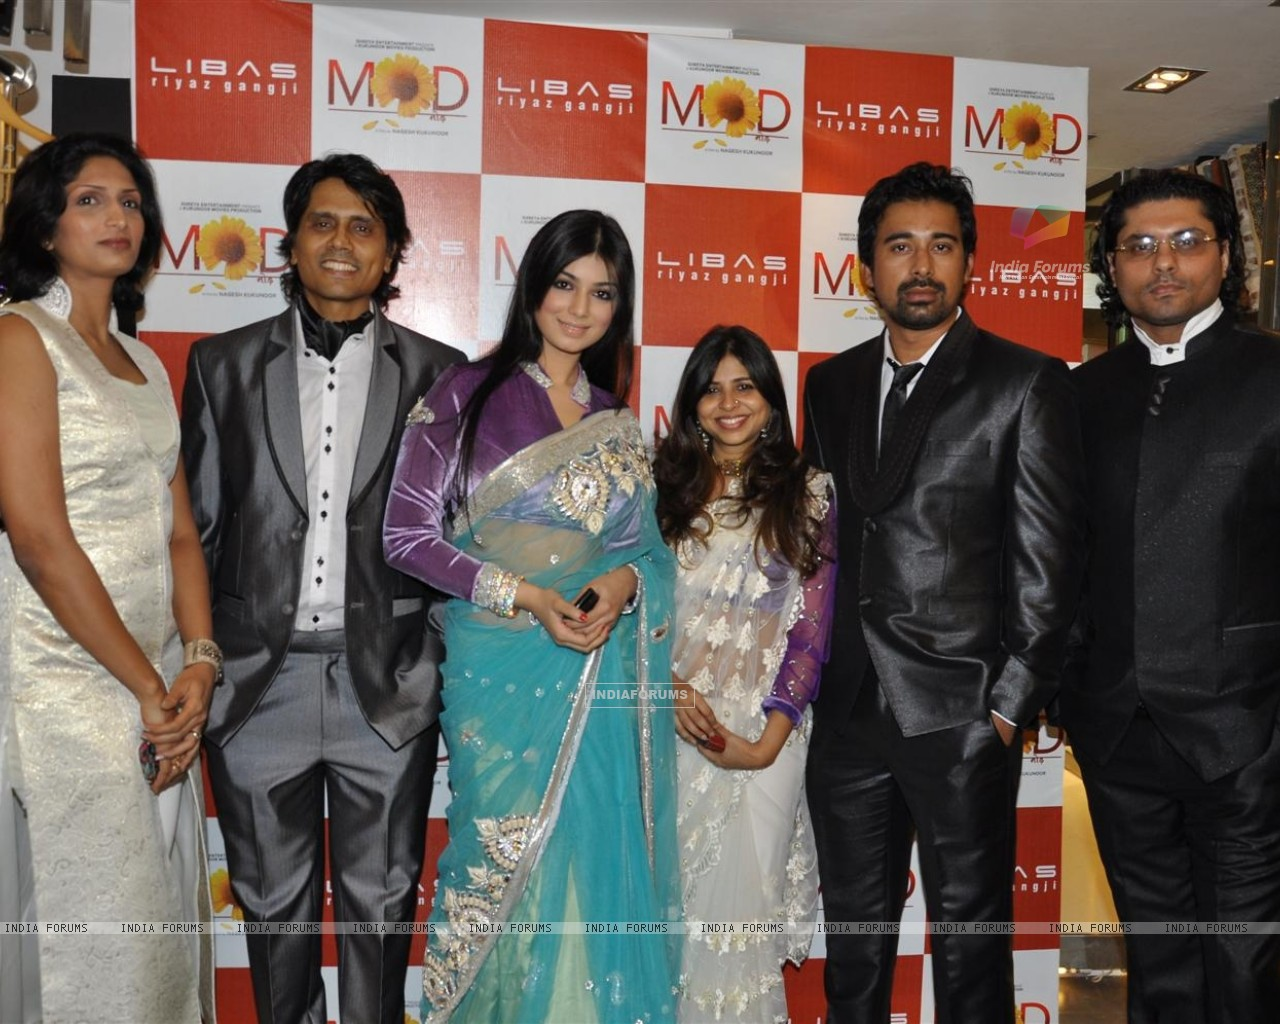 Nagesh Kukunoor, Ayesha Takia and Rannvijay Singh promote their film 'Mod' with unveiling clothes collection designer by Riyaz Gangji (159107) size:1280x1024